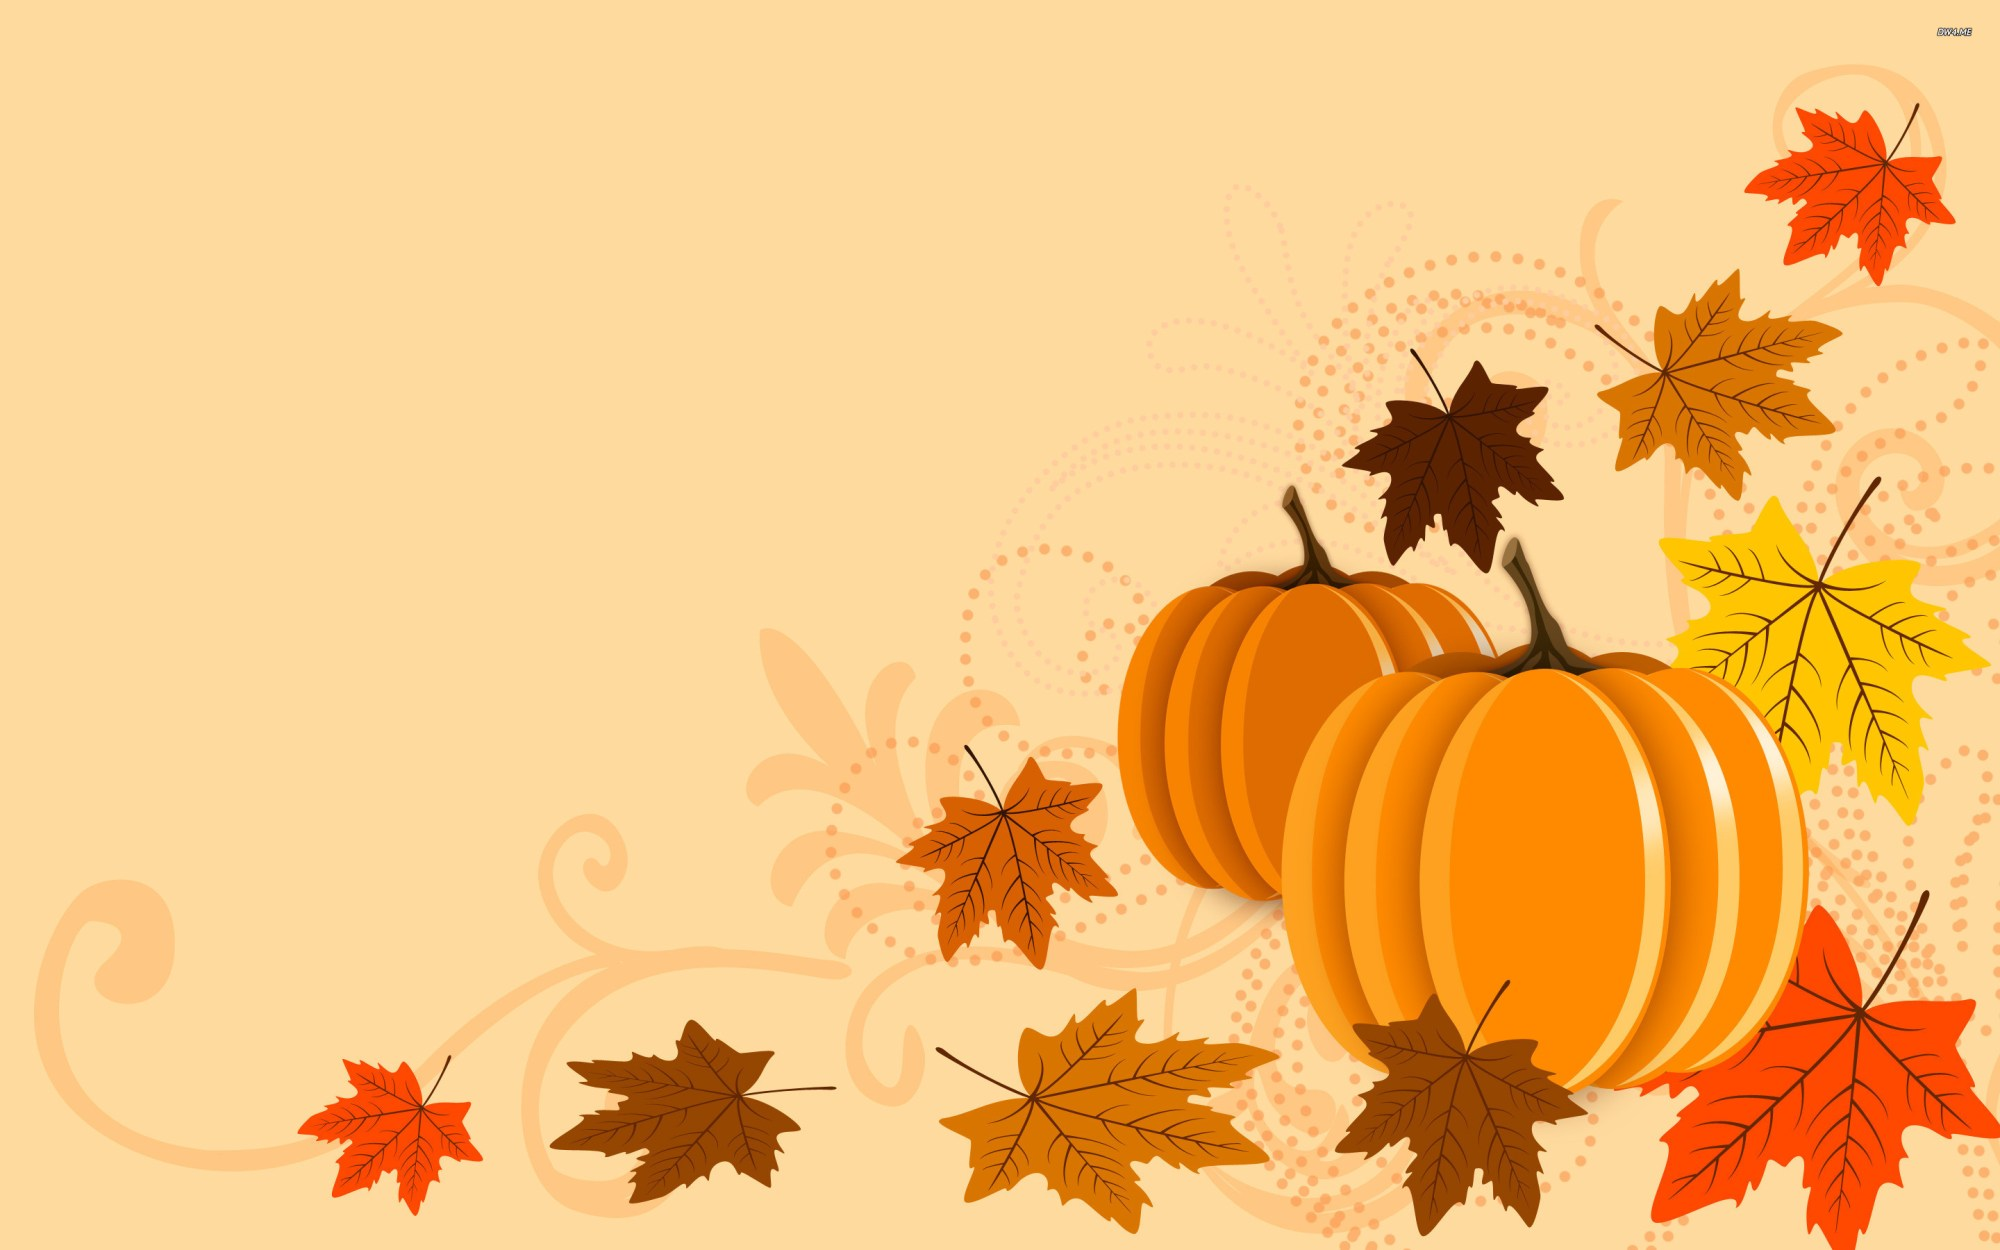 hight resolution of 1920x1080 fall leaves hd wallpaper